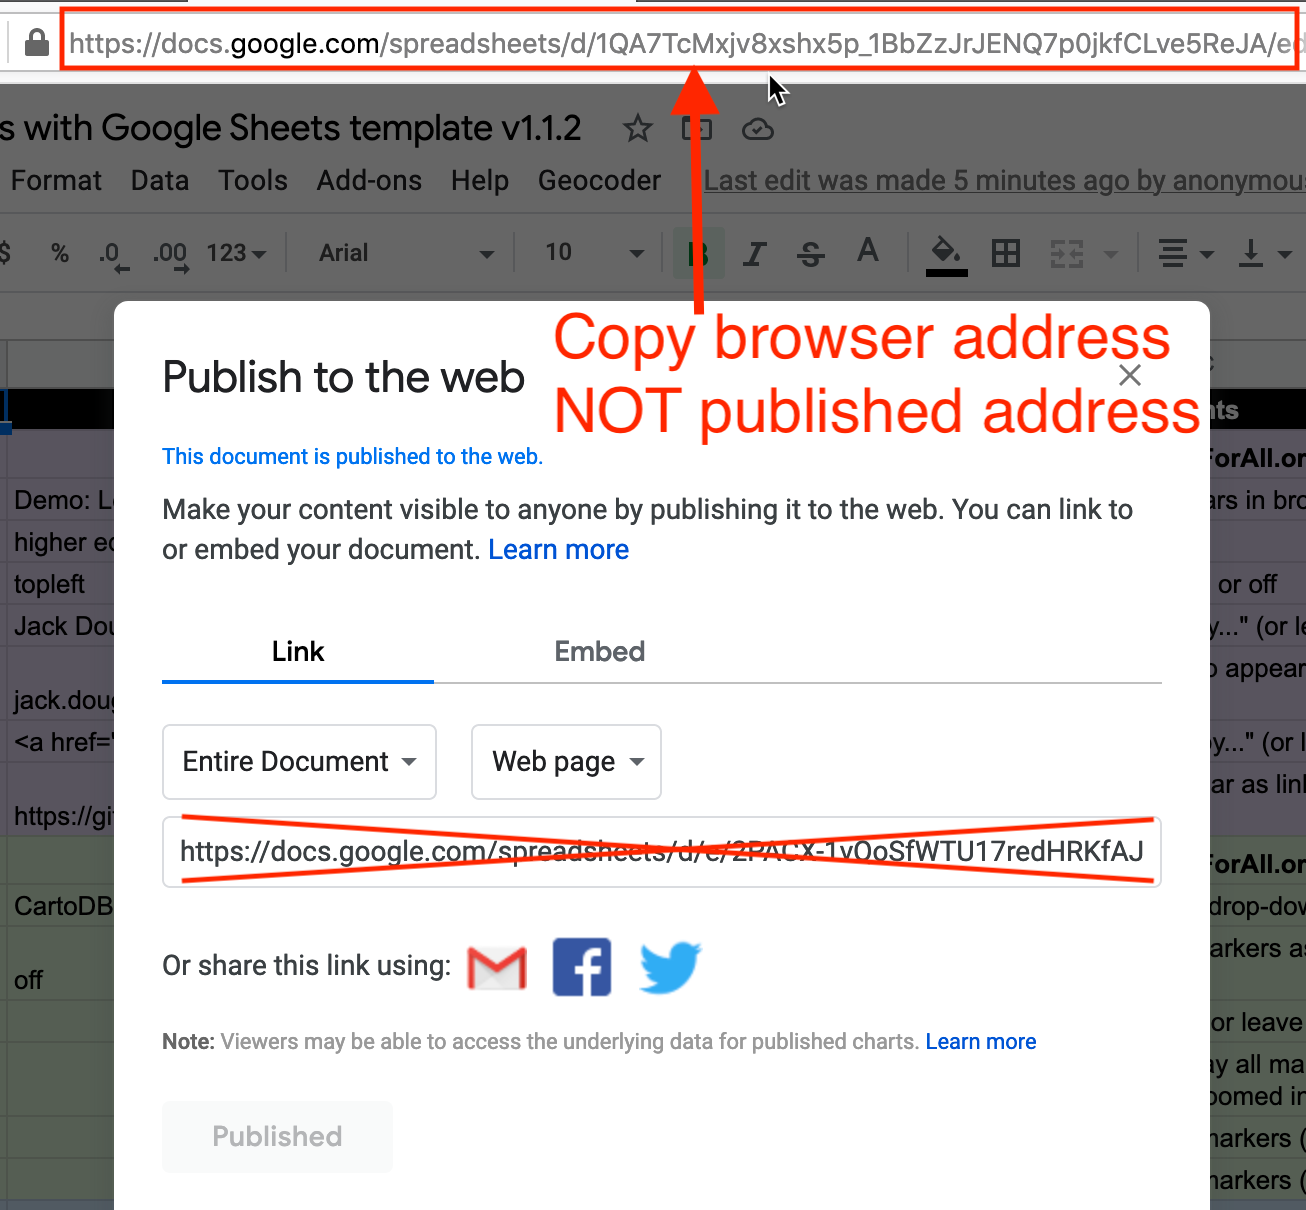 Copy the Google Sheet address at the top of the browser, NOT the Publish to the web address.